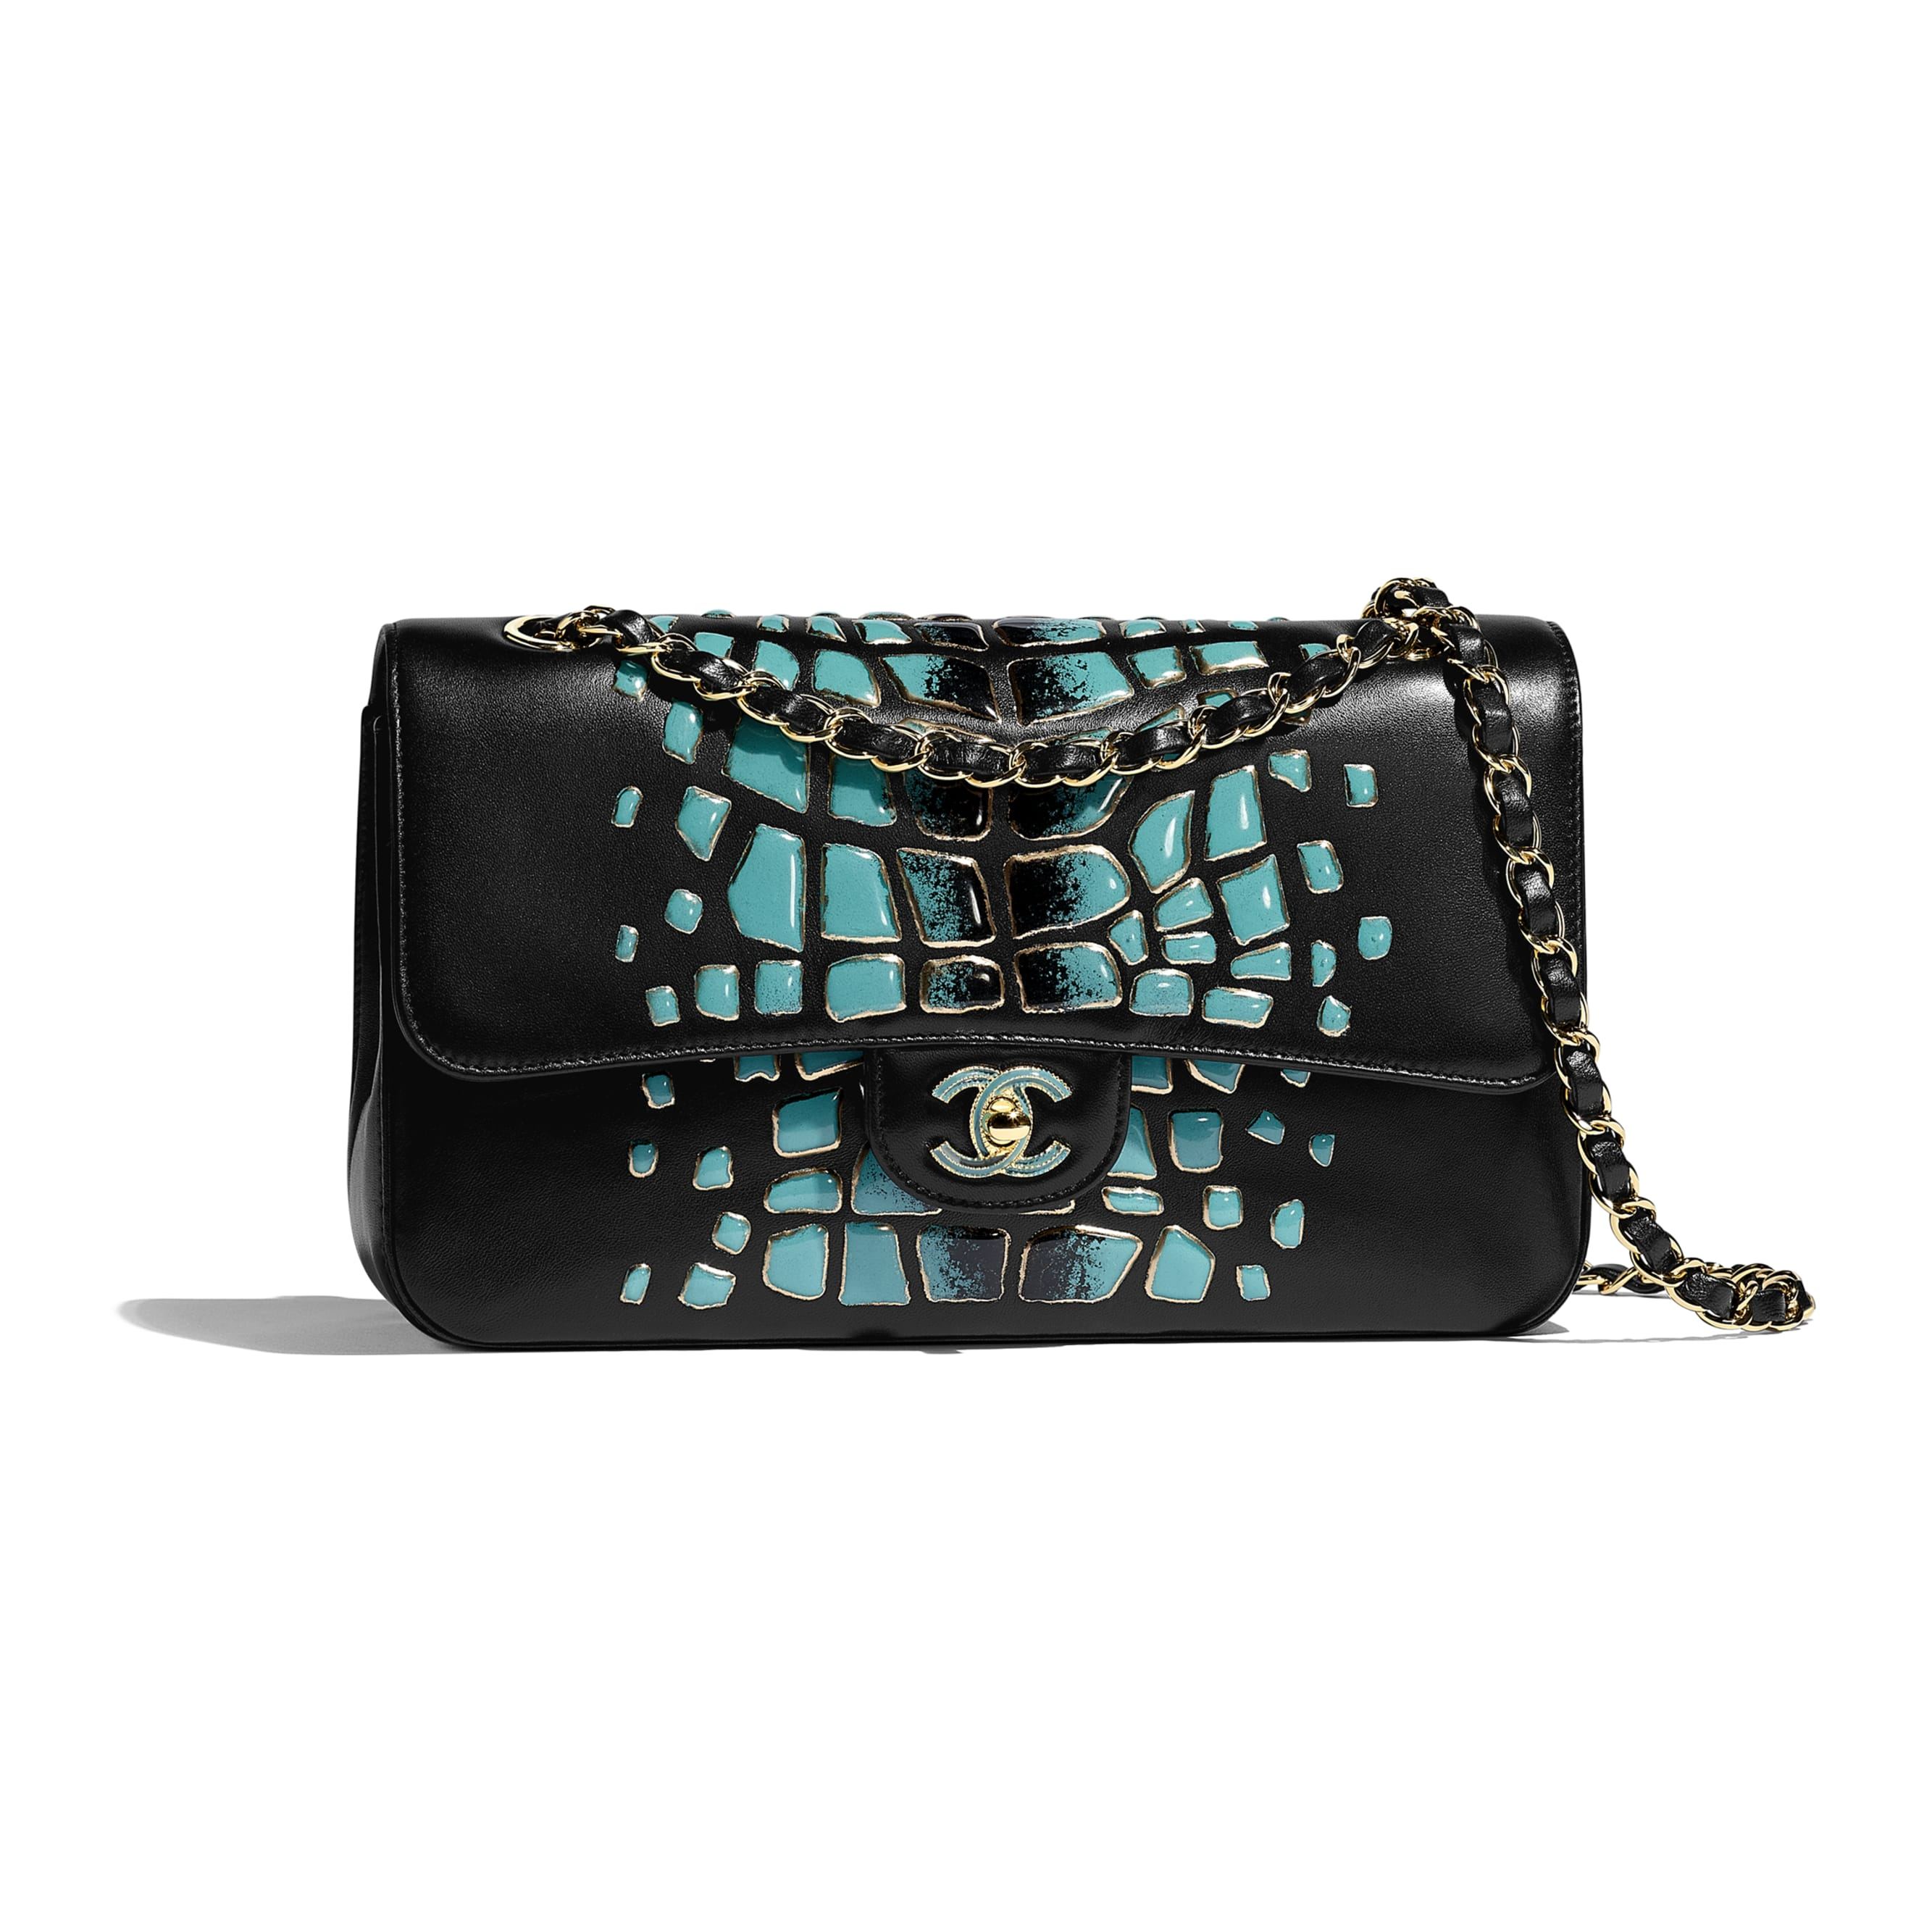 Classic Handbag - Turquoise & Black - Lambskin, Resin & Gold-Tone Metal - Default view - see standard sized version